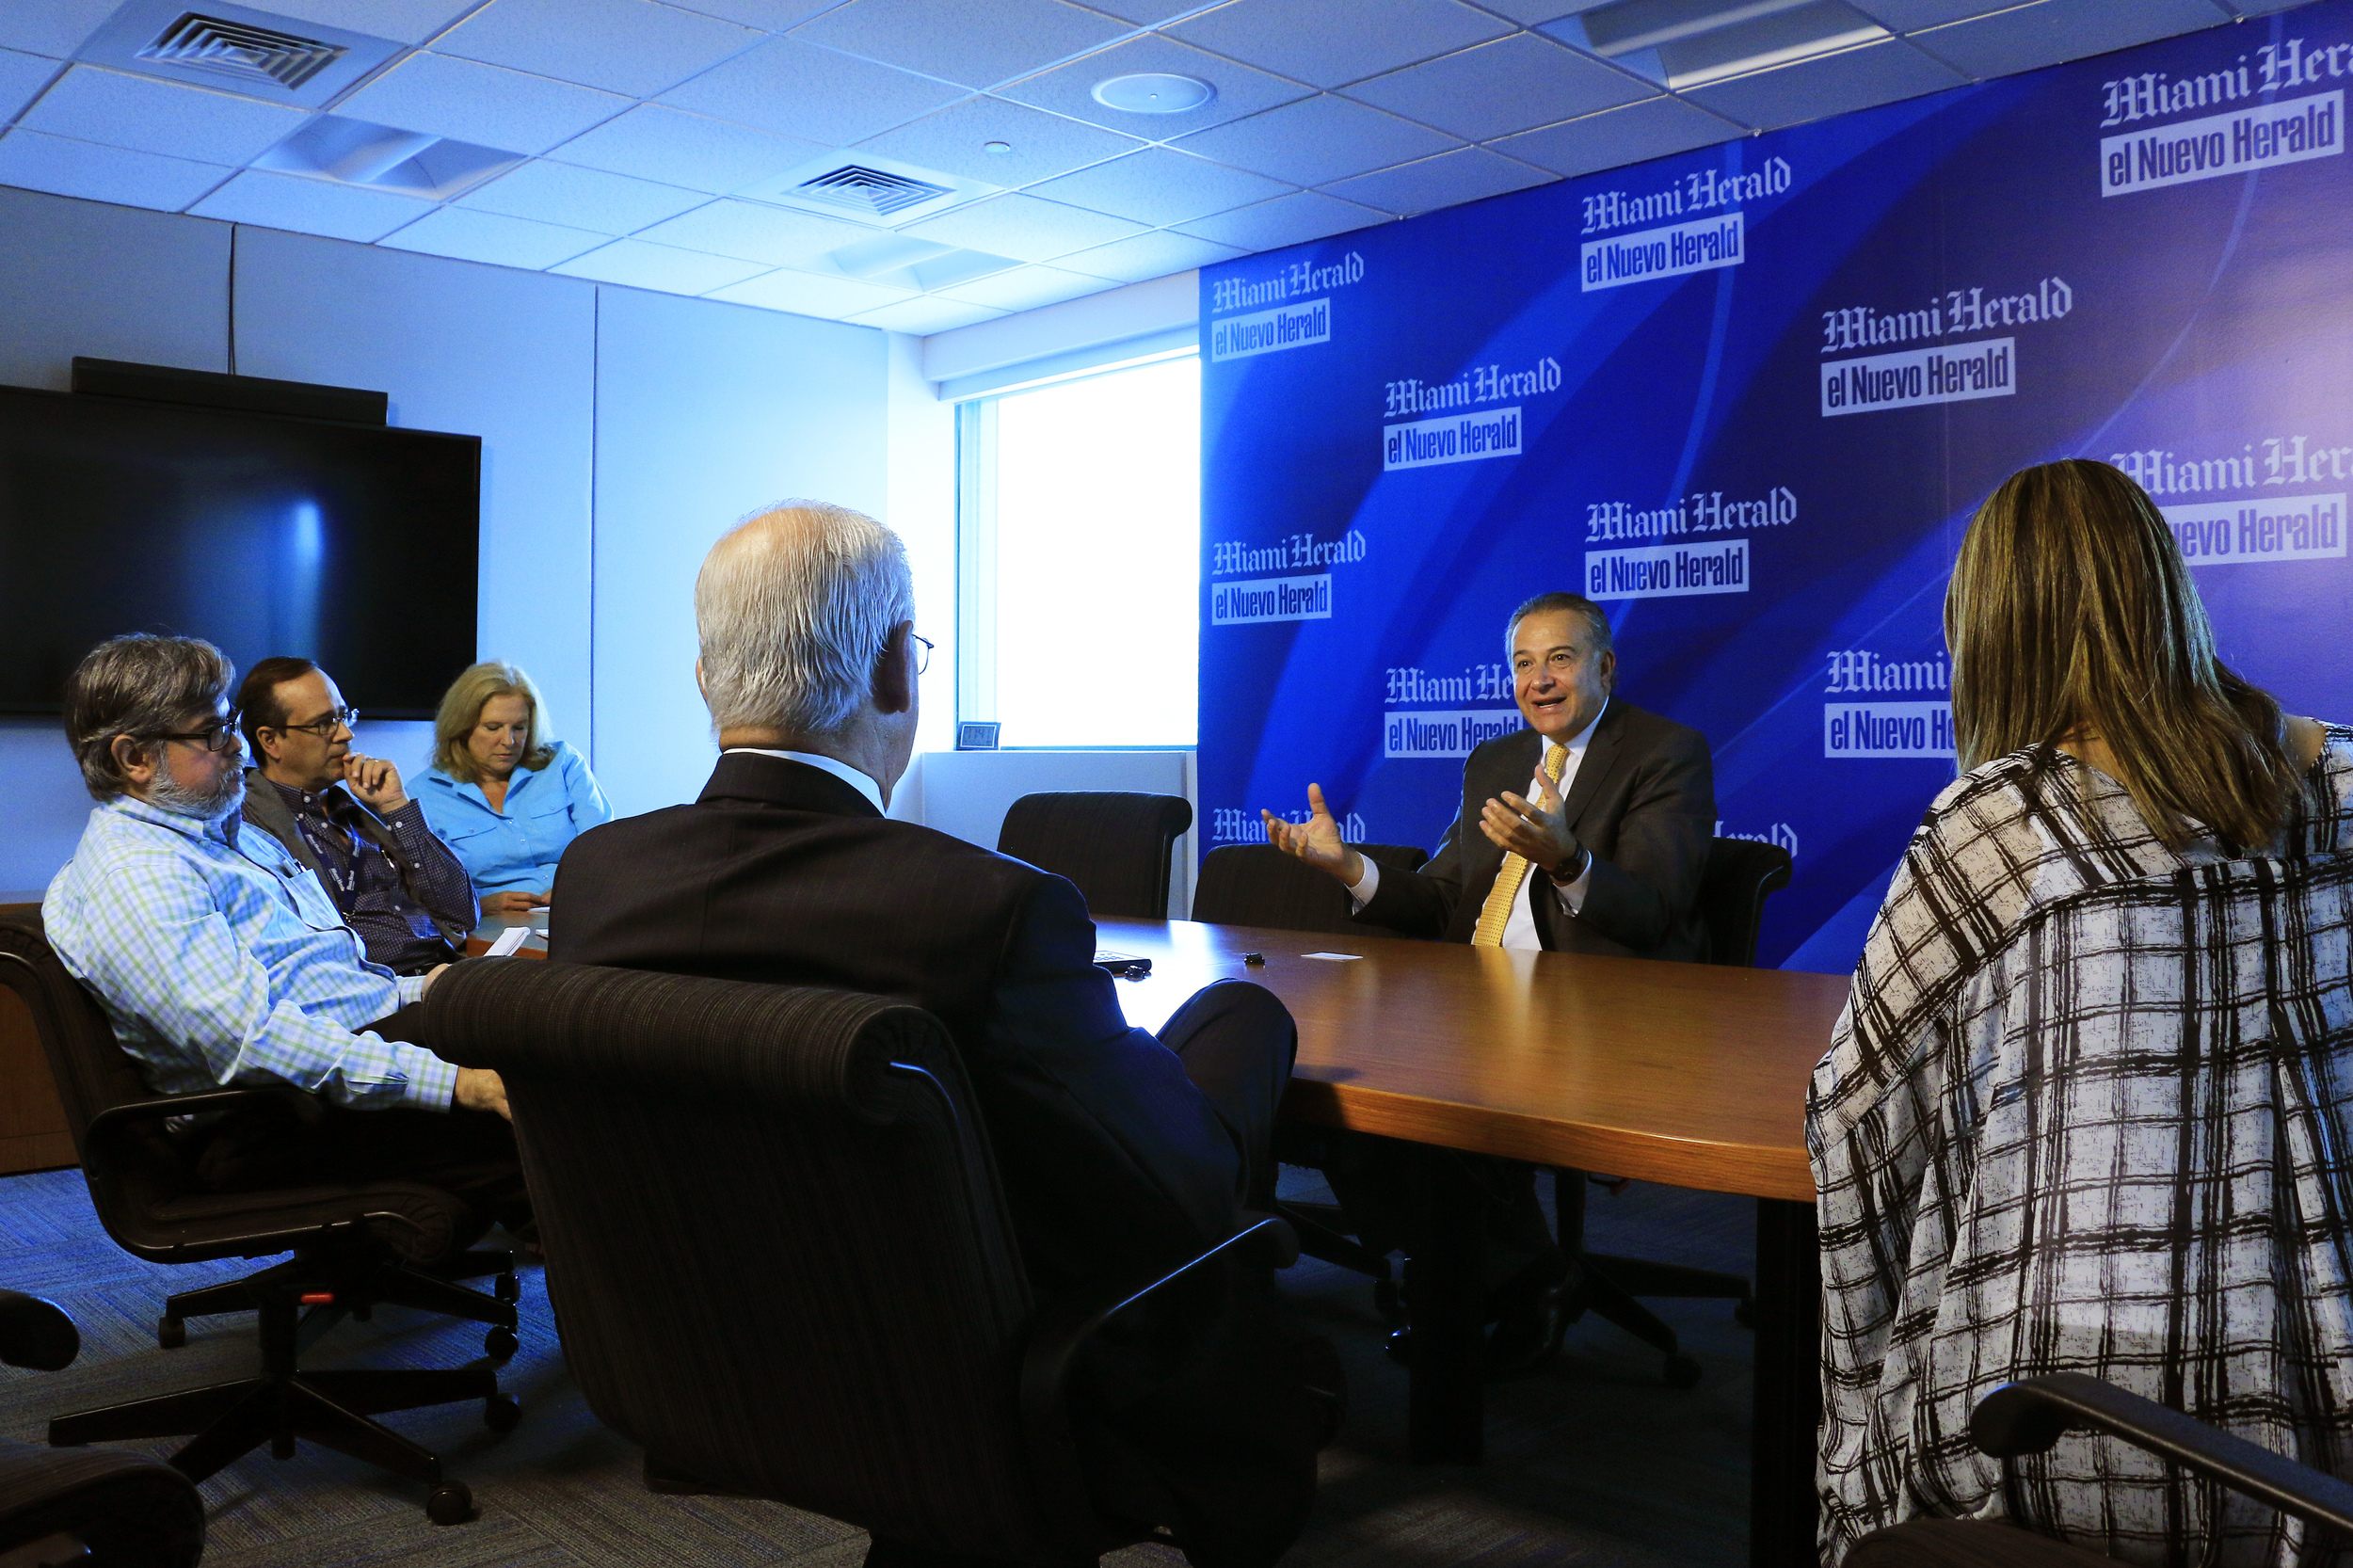 General Oscar Naranjo, member of the negotiating team for the Columbian government, meet with reporters at The Miami Herald to talk about the conflict and resolutions that are ongoing with the FARC guerrillas in Havana on July 11, 2016.